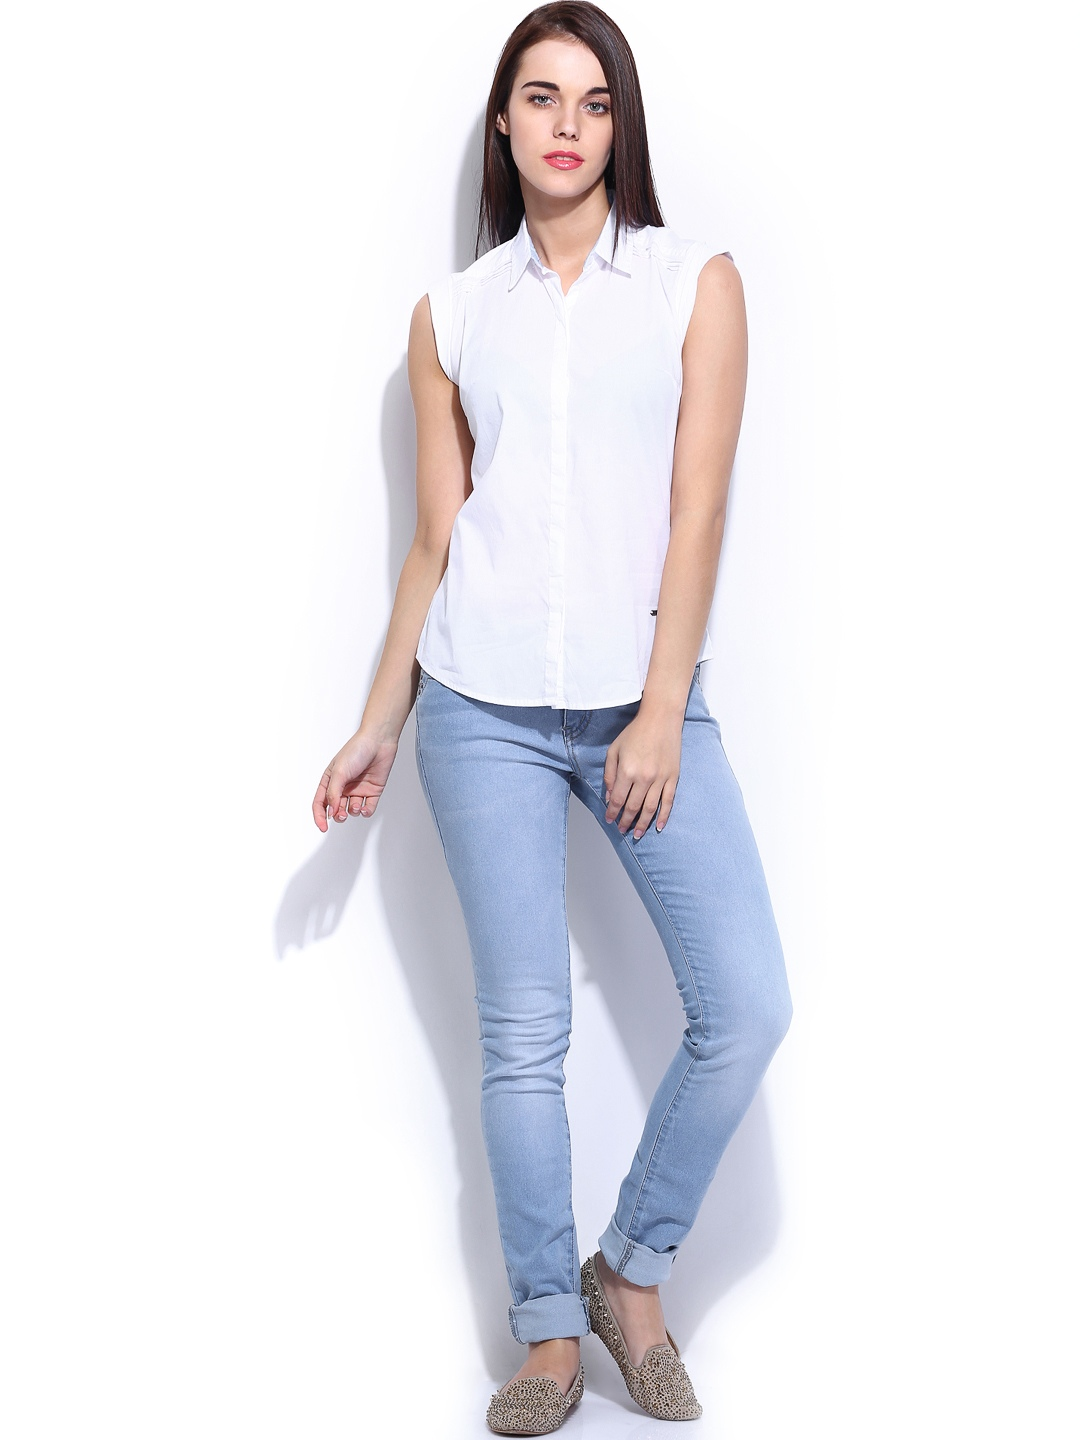 Jeans & Denim: Free Shipping on orders over $45 at fefdinterested.gq - Your Online Jeans & Denim Store! Get 5% in rewards with Club O! White Mark Women's Plus Size Super Stretch Denim Jeans. 41 Reviews. Miss Me Denim Jeans Womens Bootcut Star .